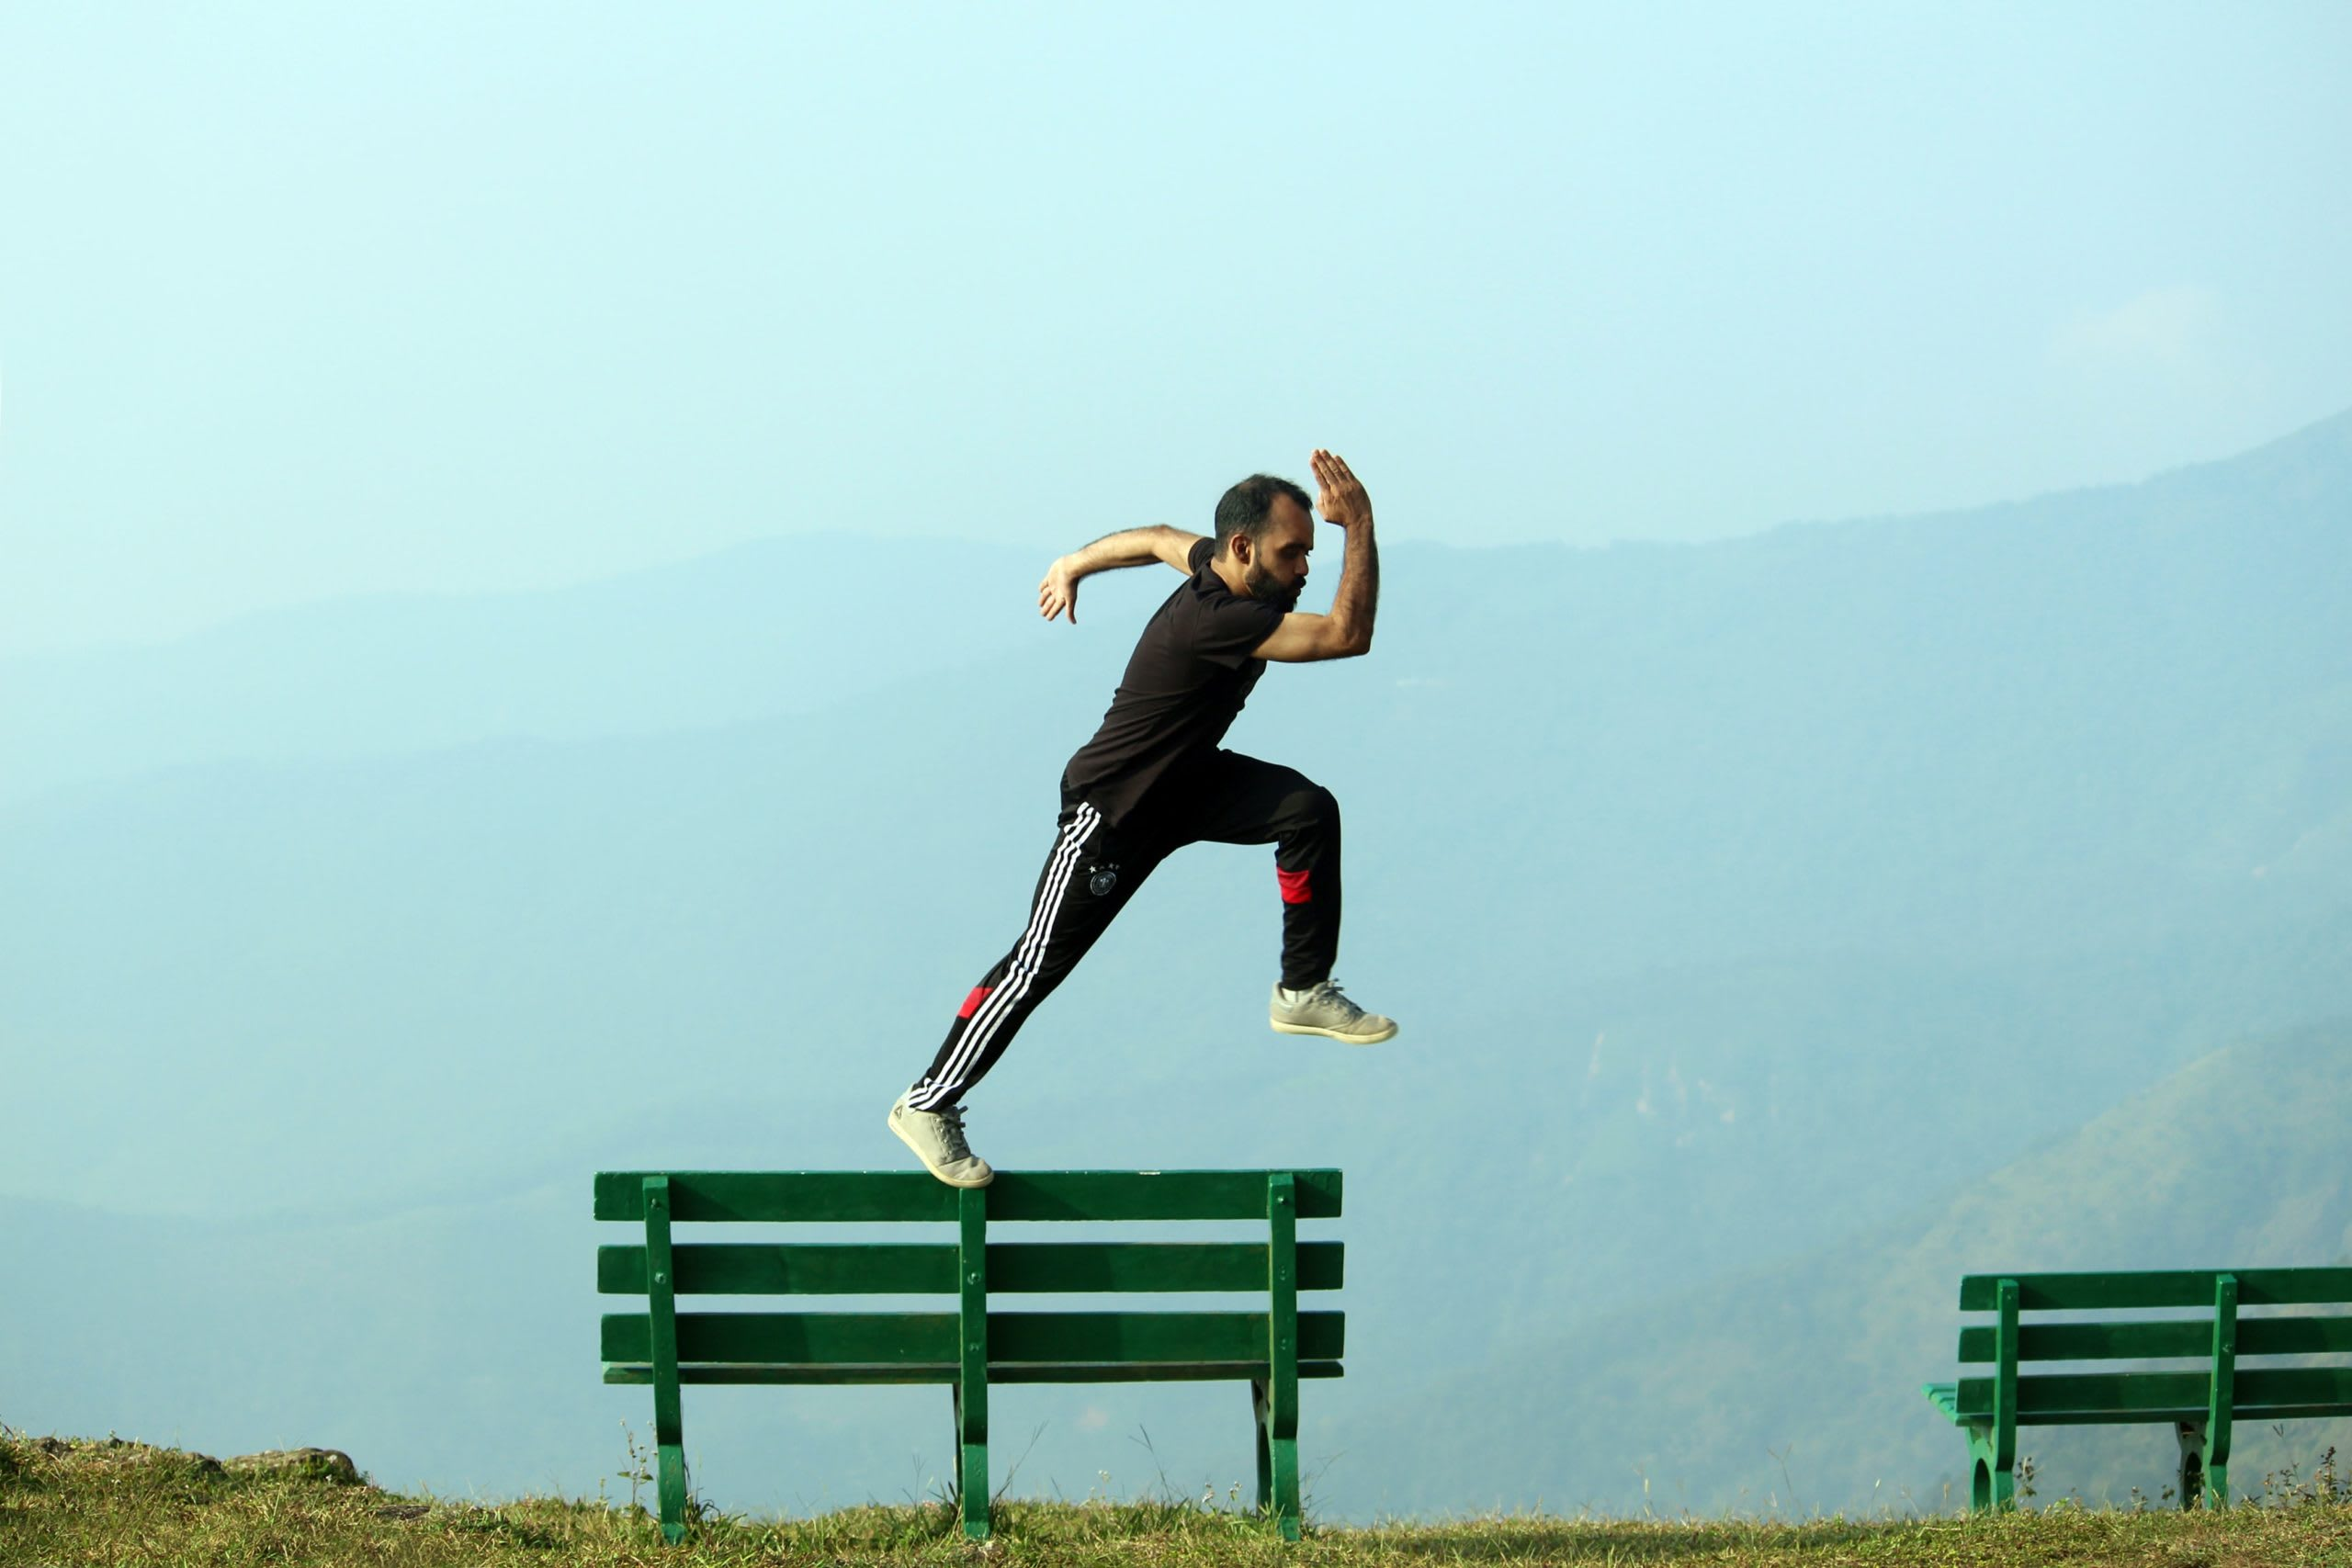 Man jumping from one bench to another